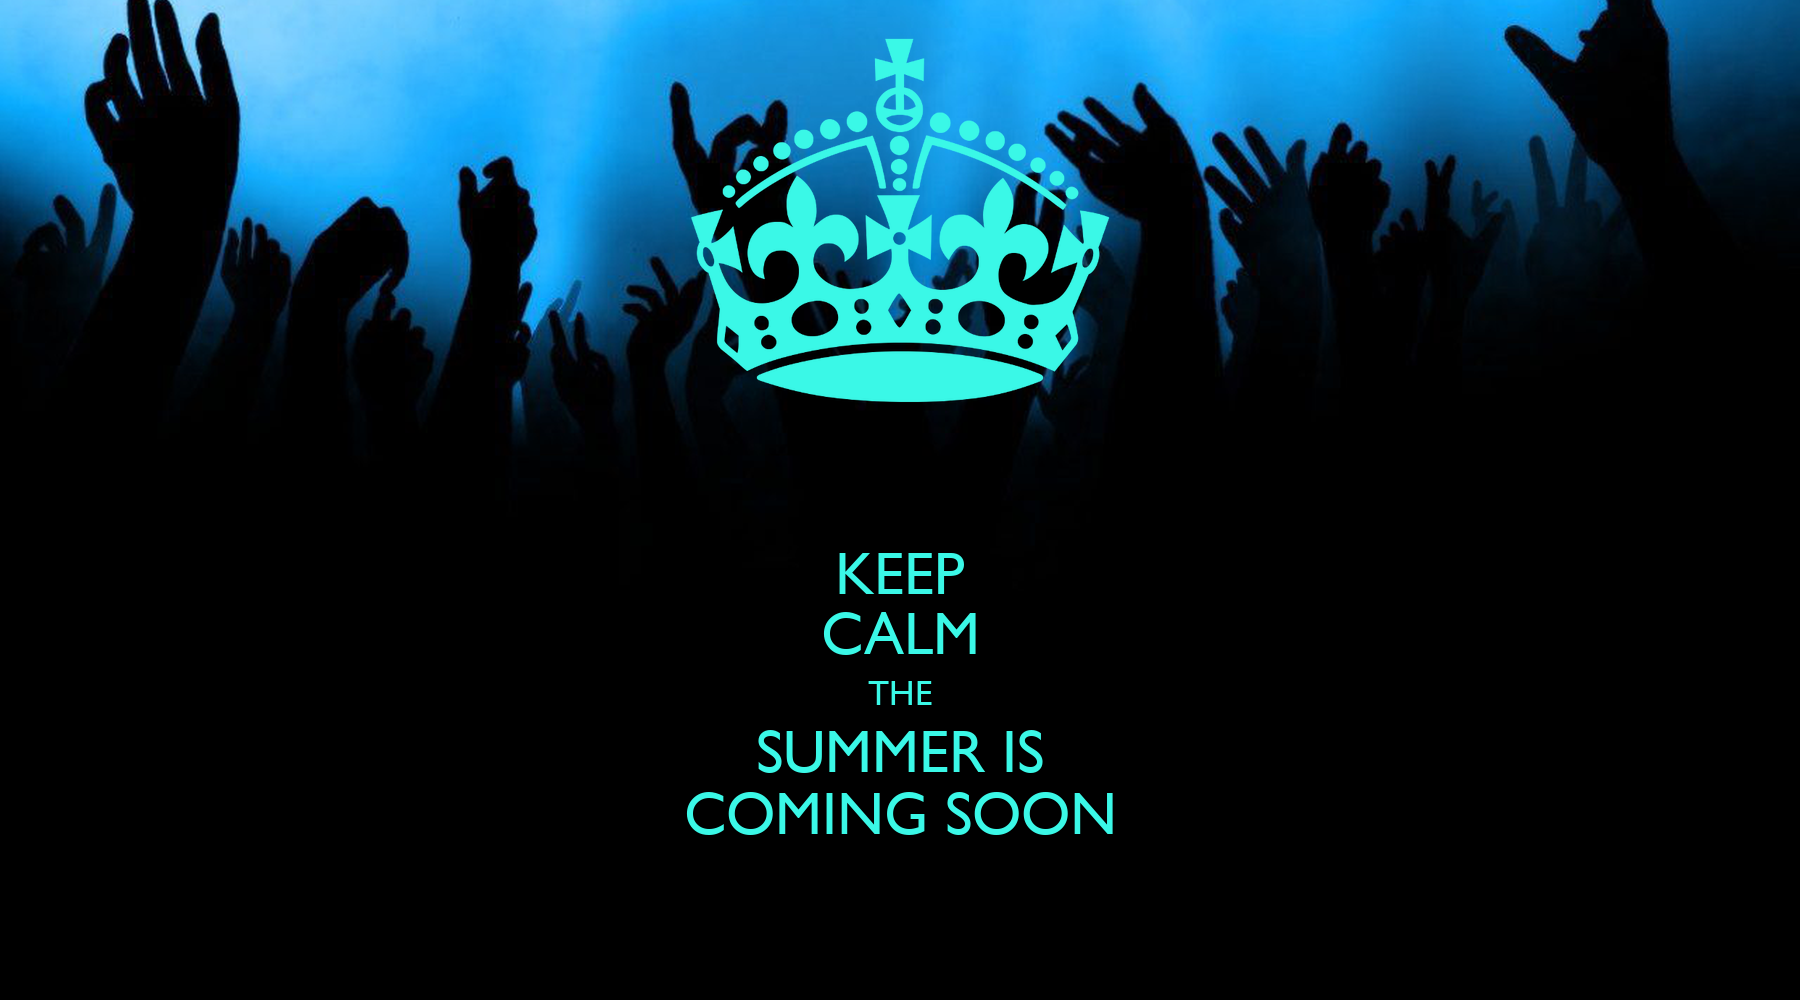 KEEP CALM THE SUMMER IS COMING SOON - KEEP CALM AND CARRY ON Image Generator